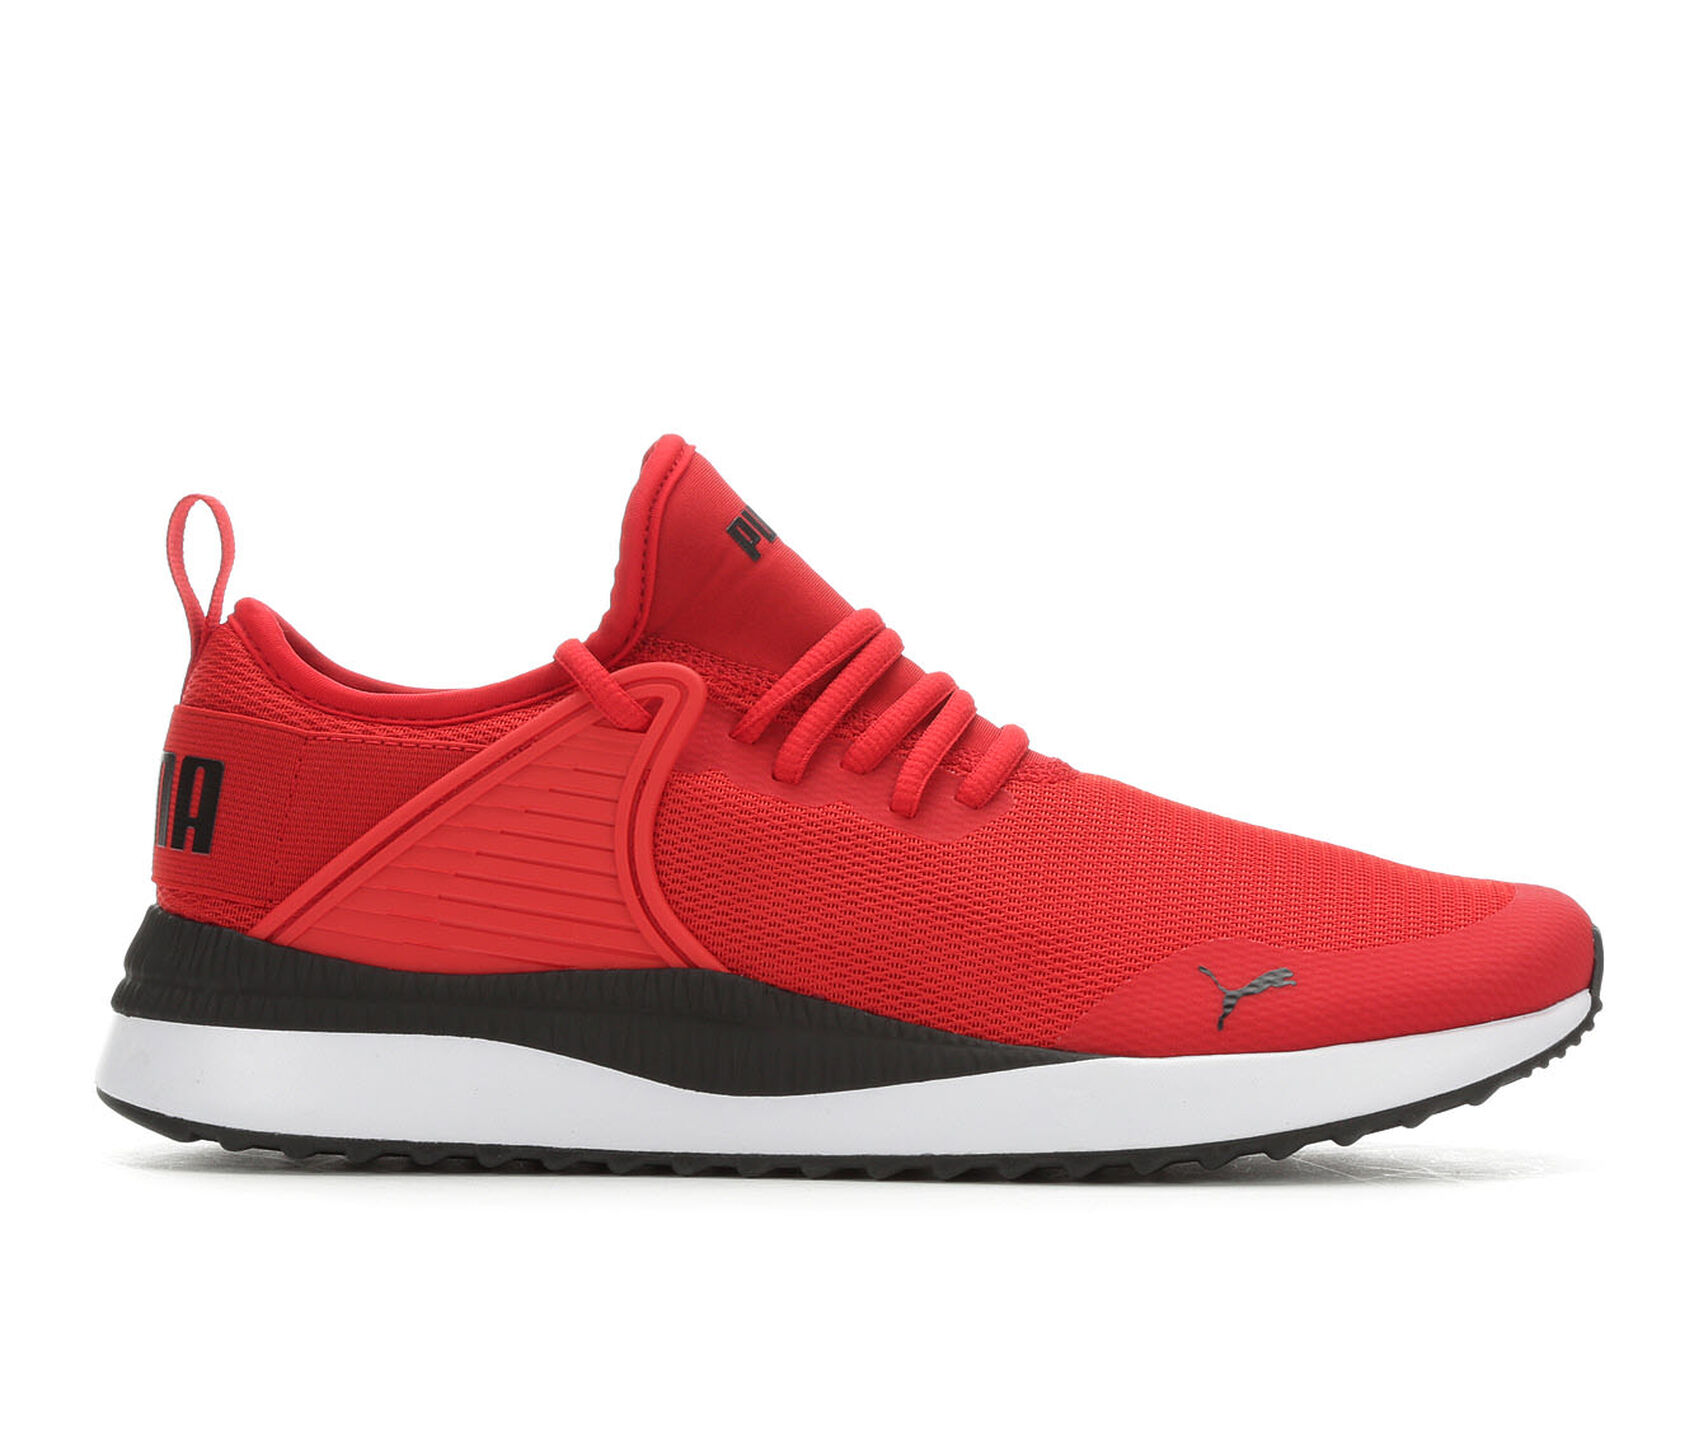 190cdc991b8 Men s Puma Pacer Next Cage Sneakers